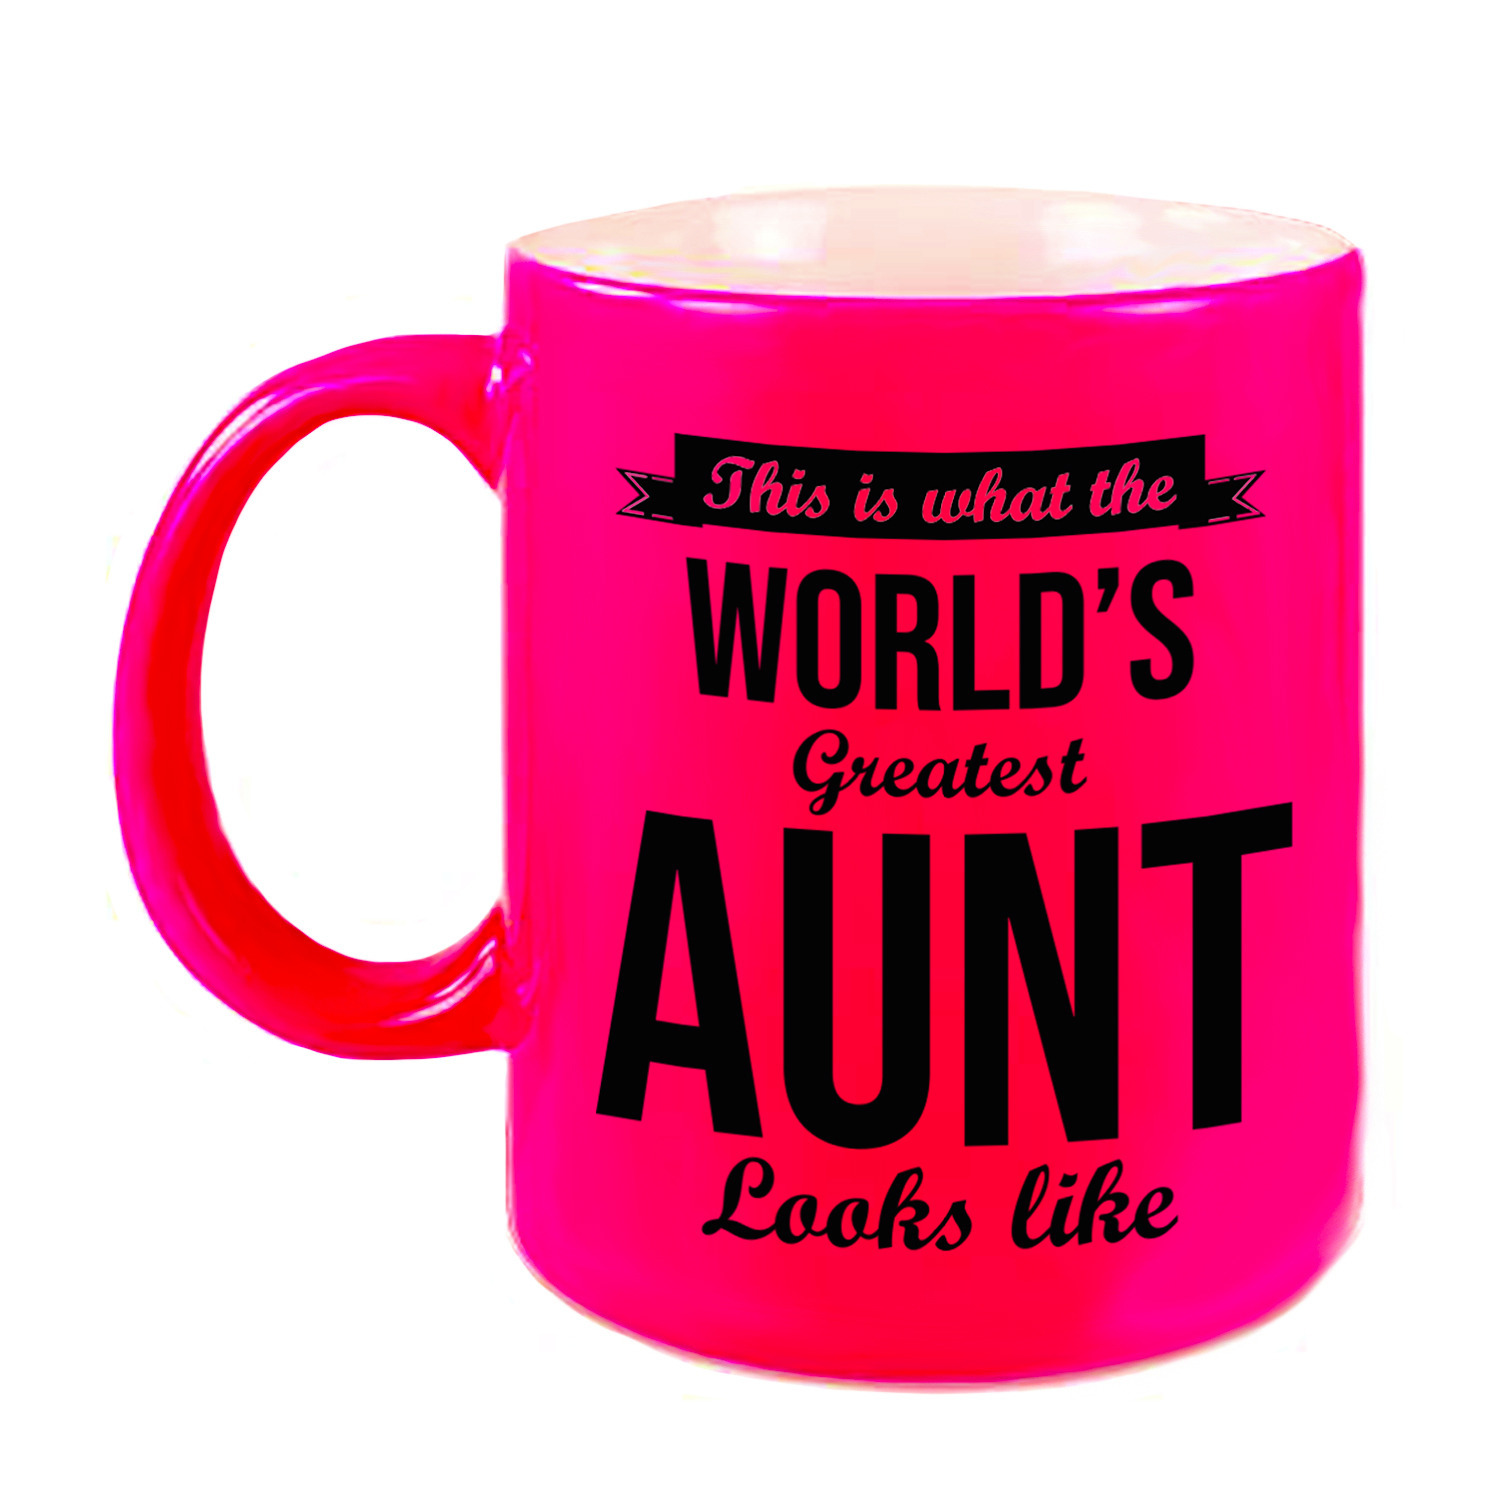 Tante cadeau mok-beker neon roze This is what the Worlds Greatest Aunt looks like